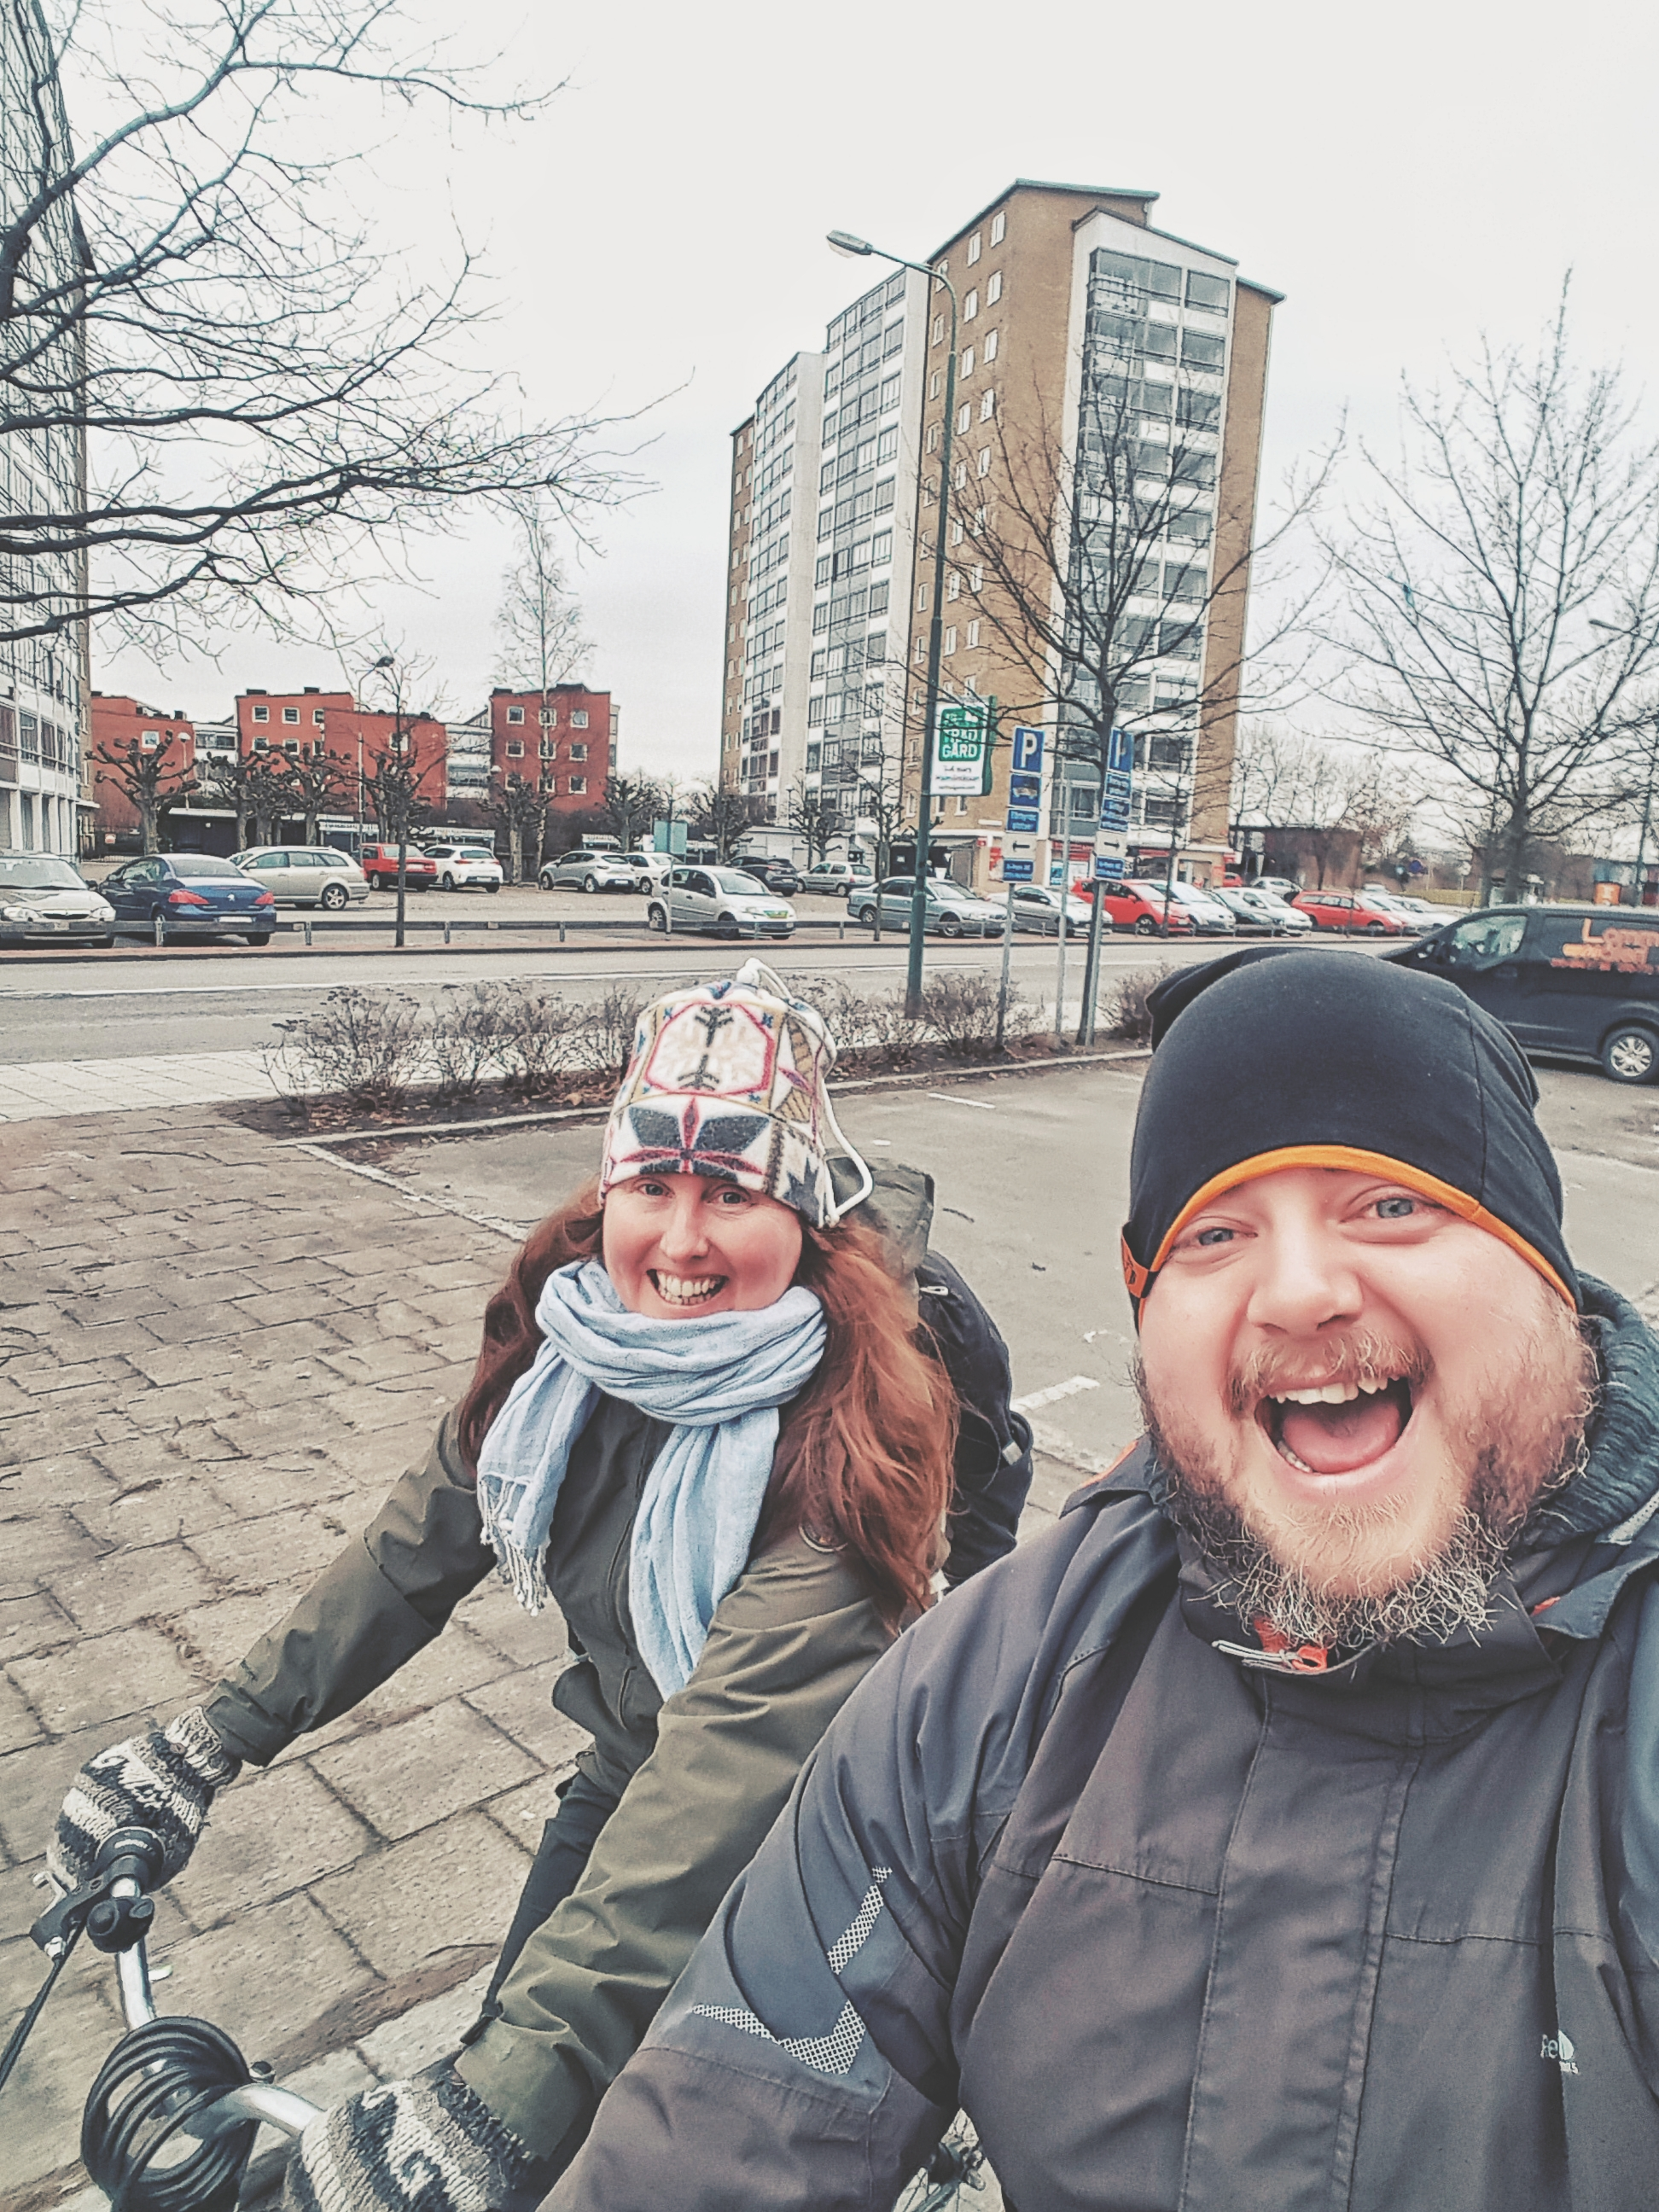 Getting around Malmo by bike